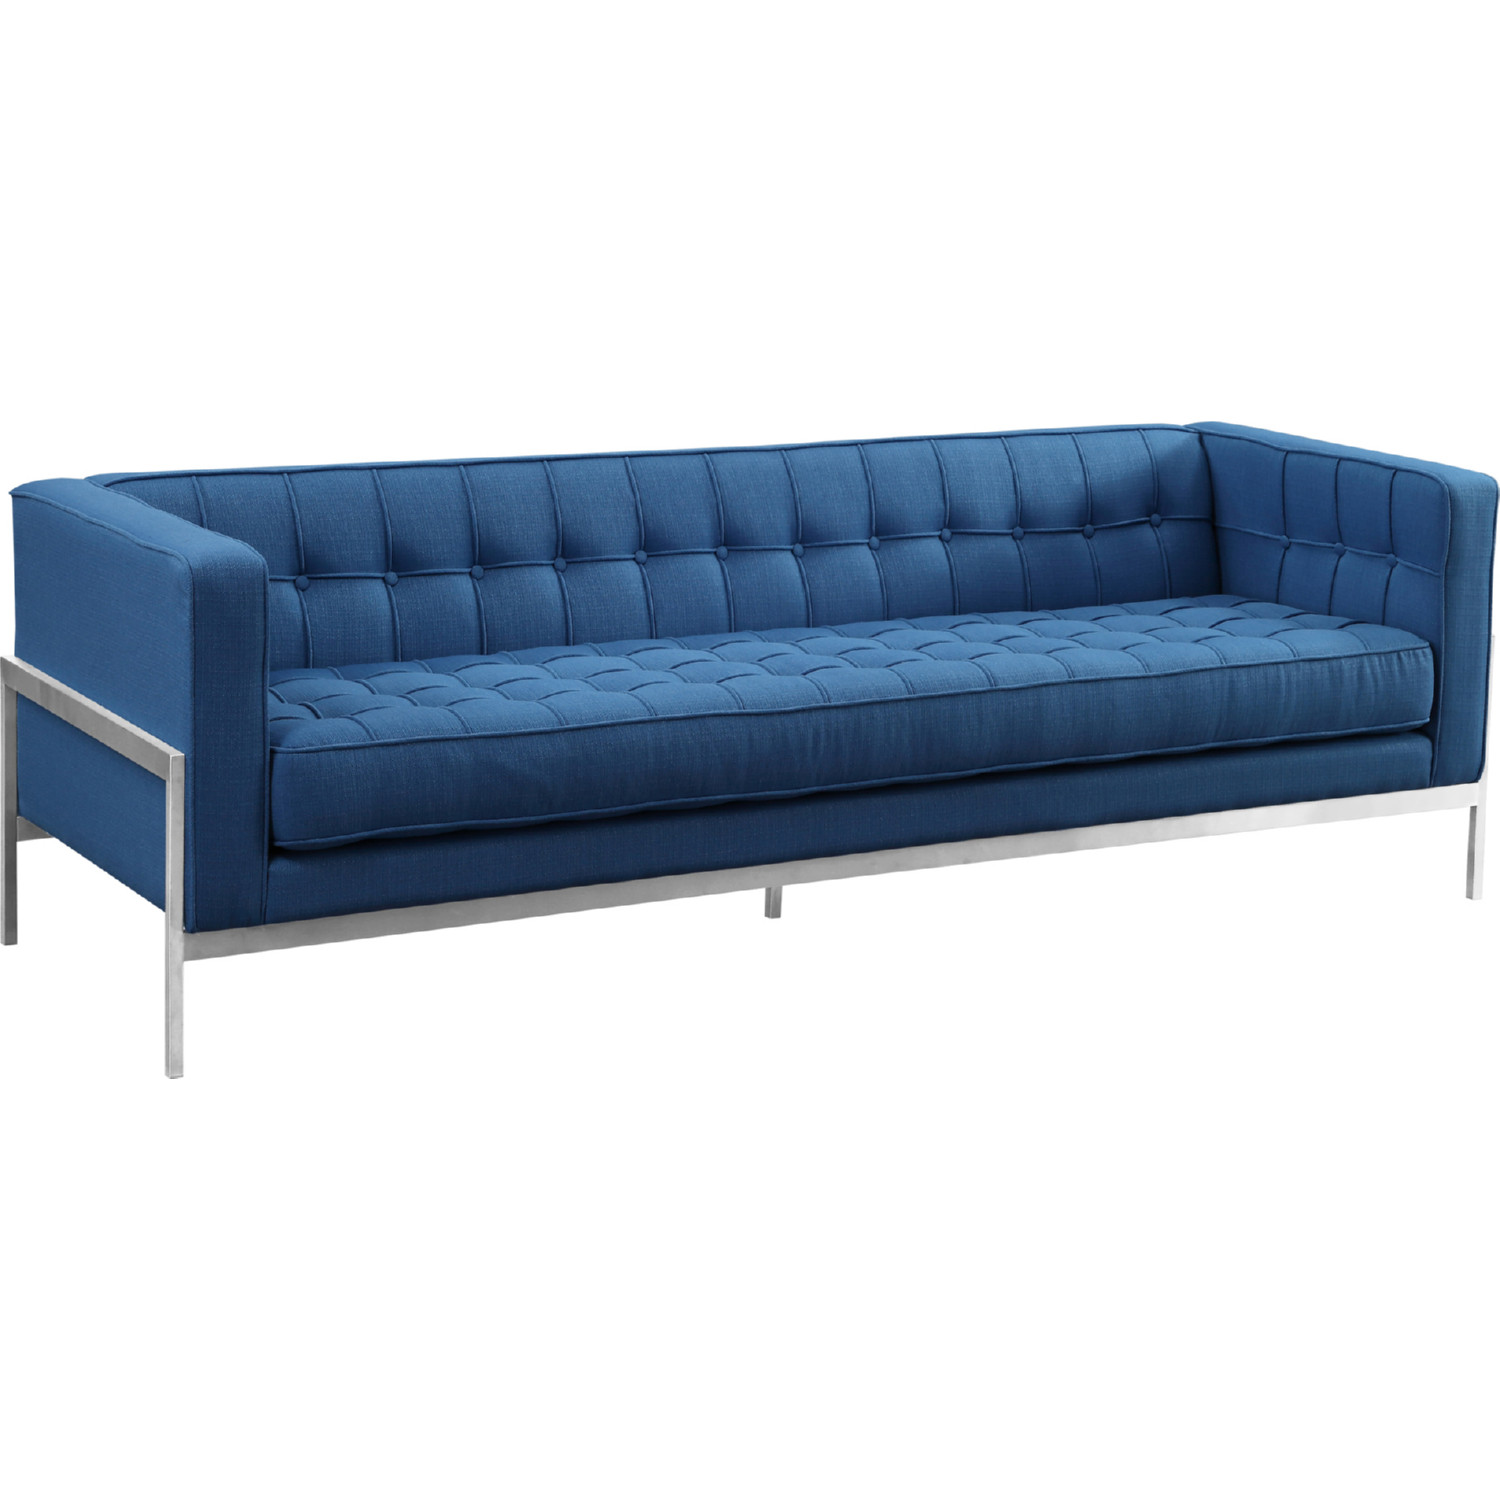 andre sofa power headrest armen living lcan3blue in brushed stainless steel blue fabric by